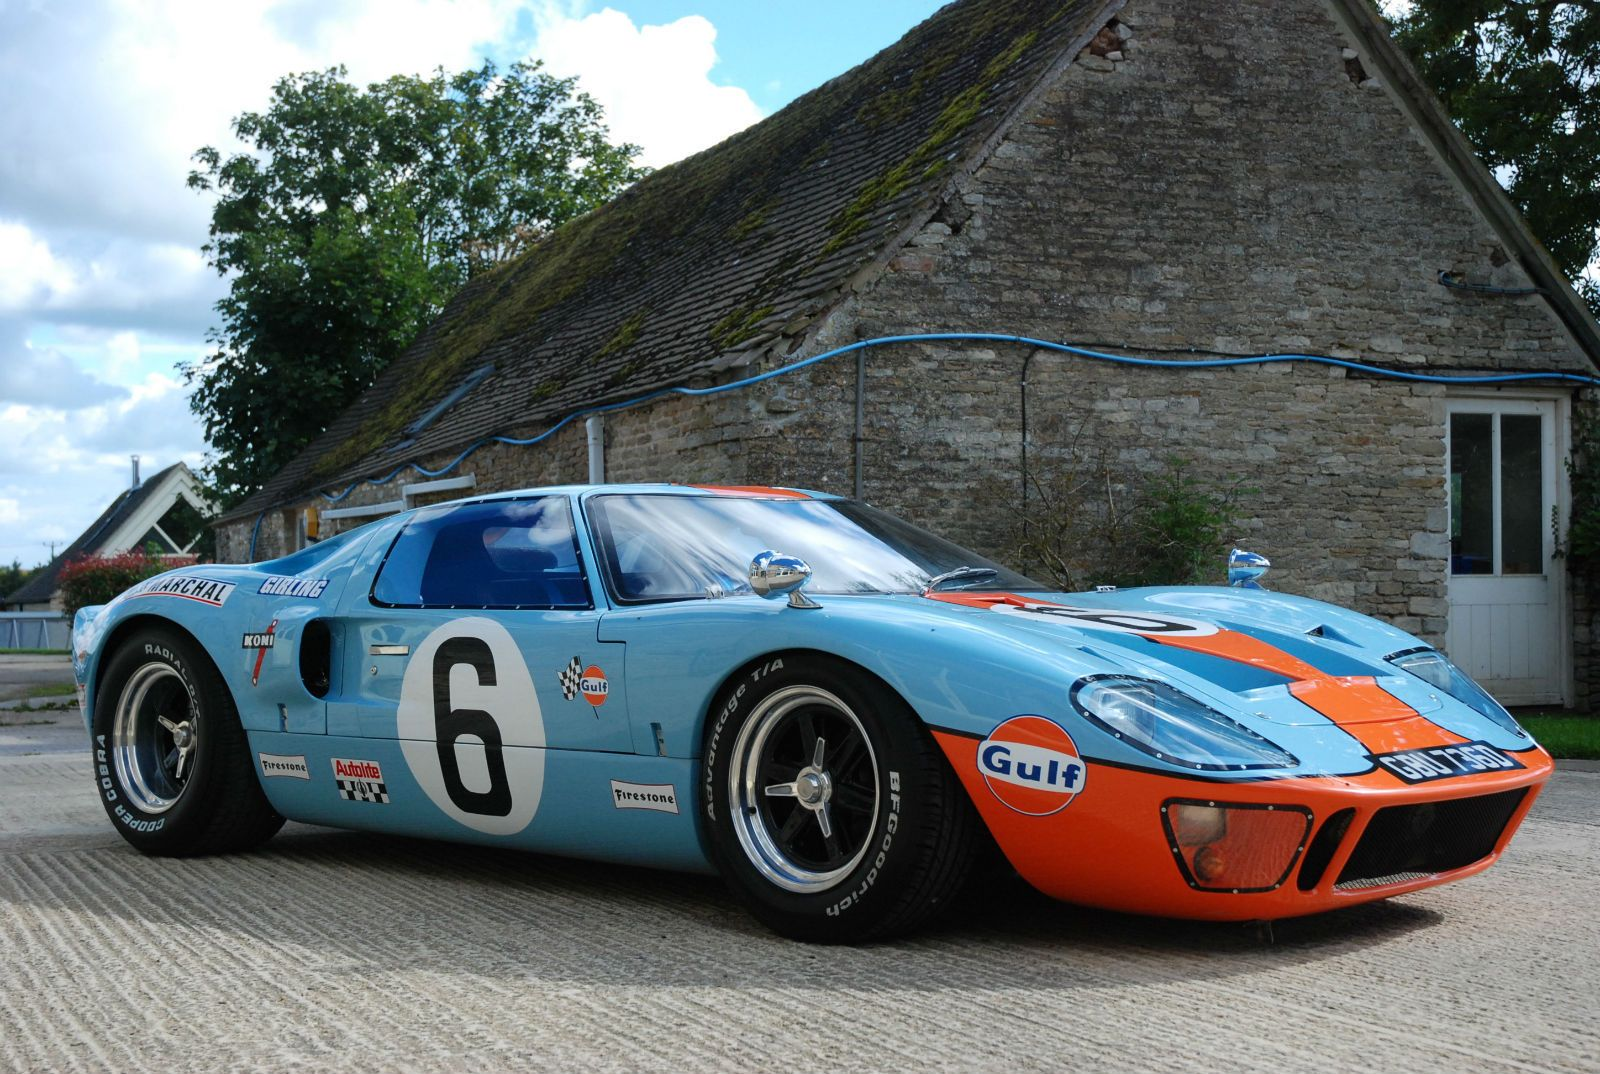 Ford Gt40 Jacky Ickx Gt40 Gulf Colours Sold Ford Gt40 Ford